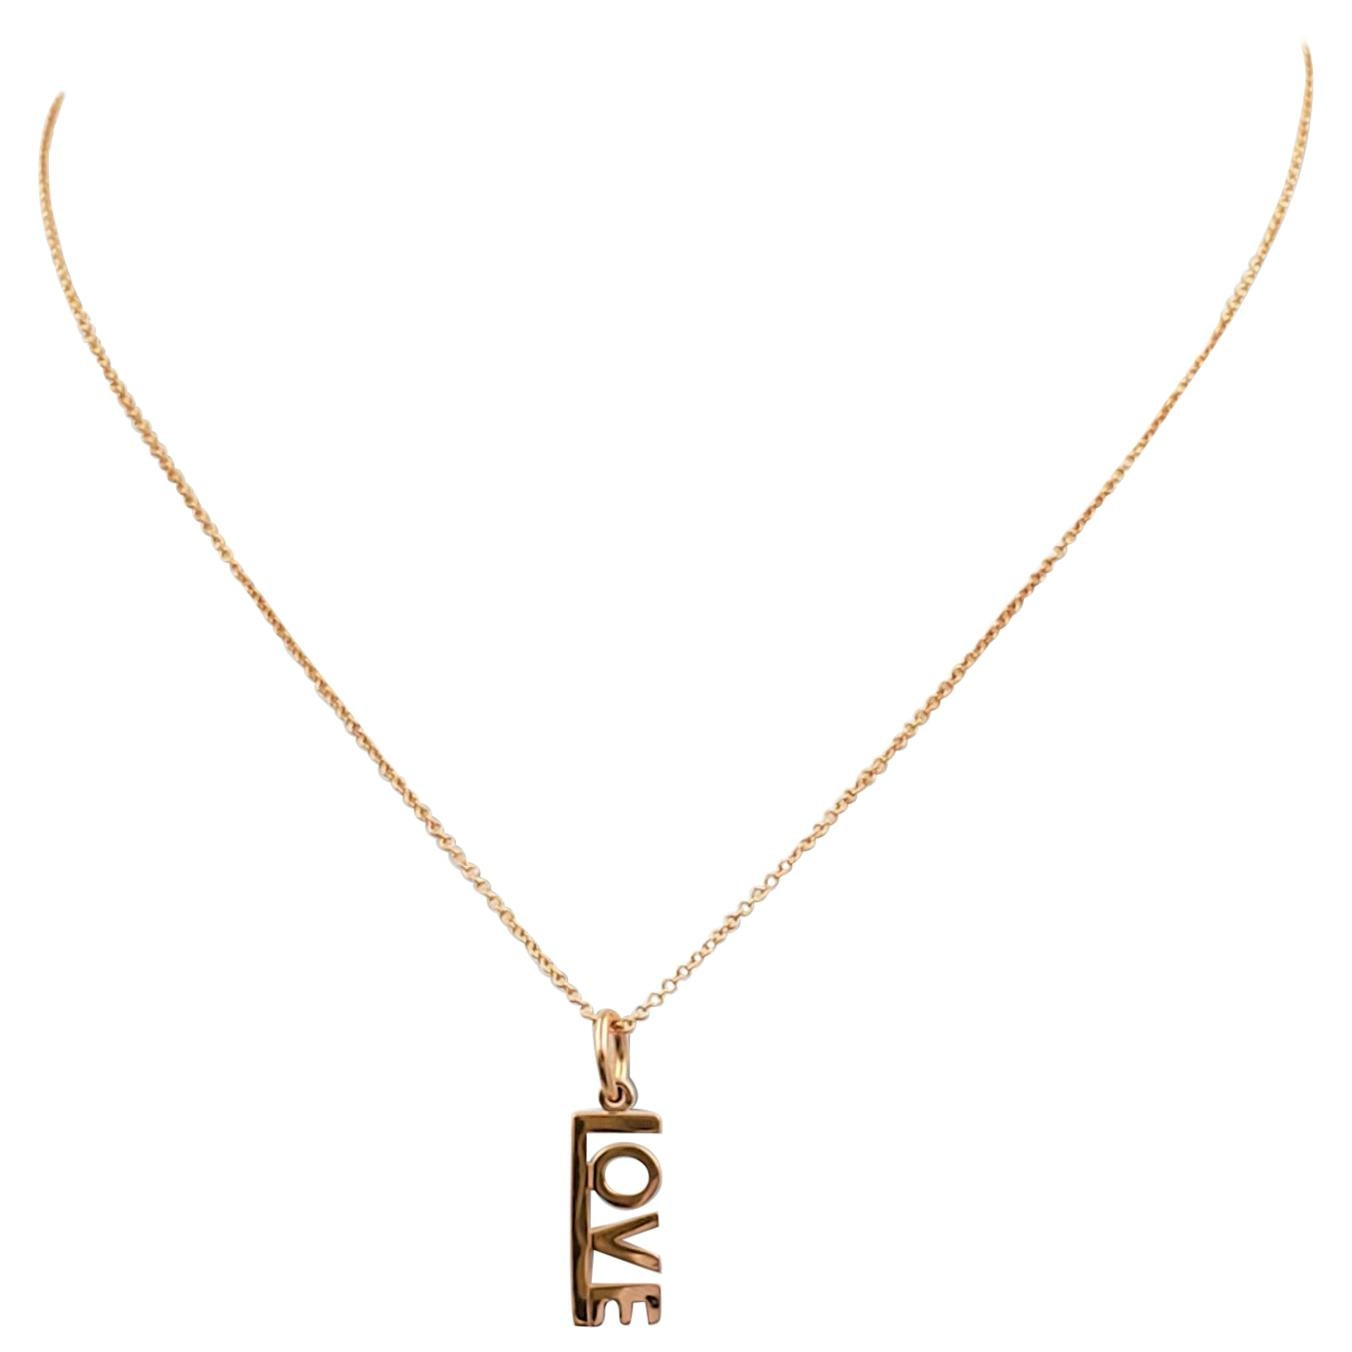 Tiffany & Co. 'LOVE' Rose Gold Pendant Necklace